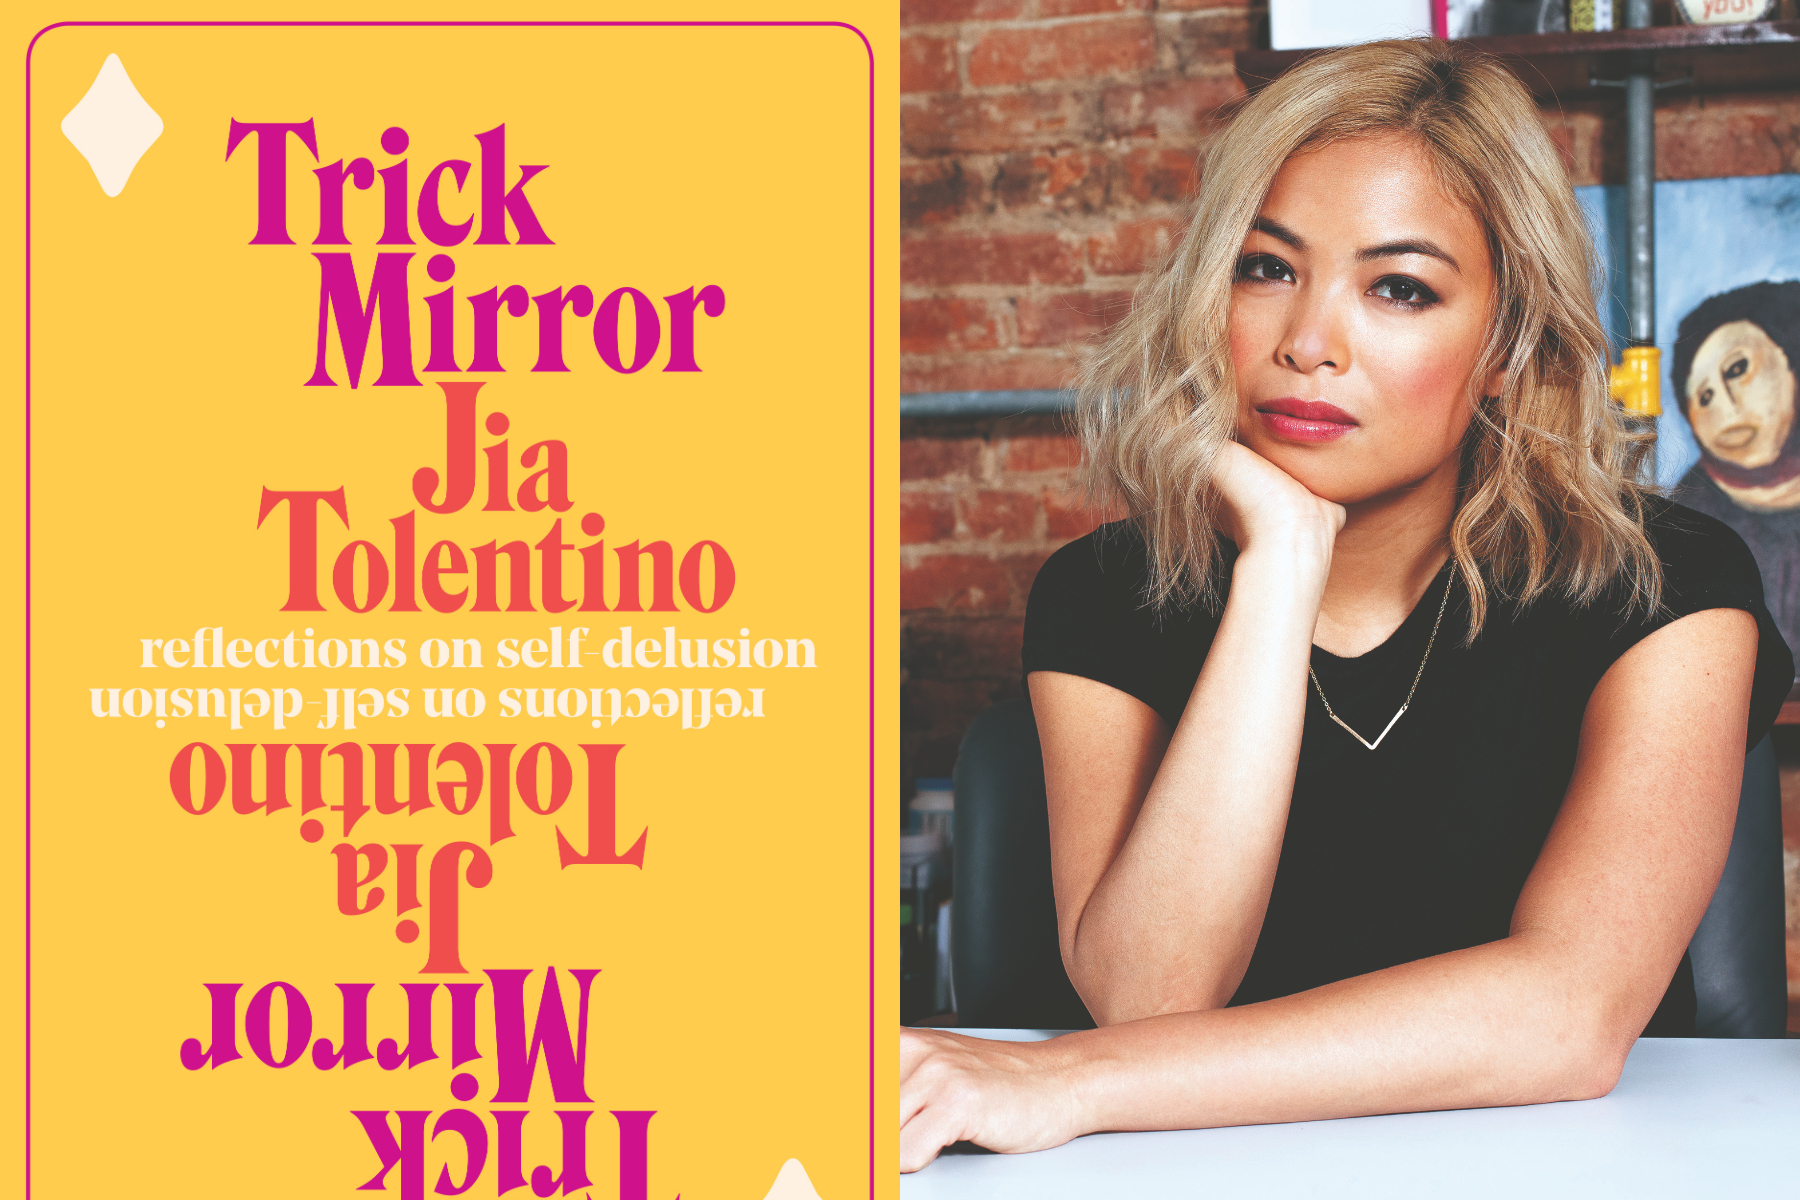 In Trick Mirror, Jia Tolentino uncovers the great con of millennial life